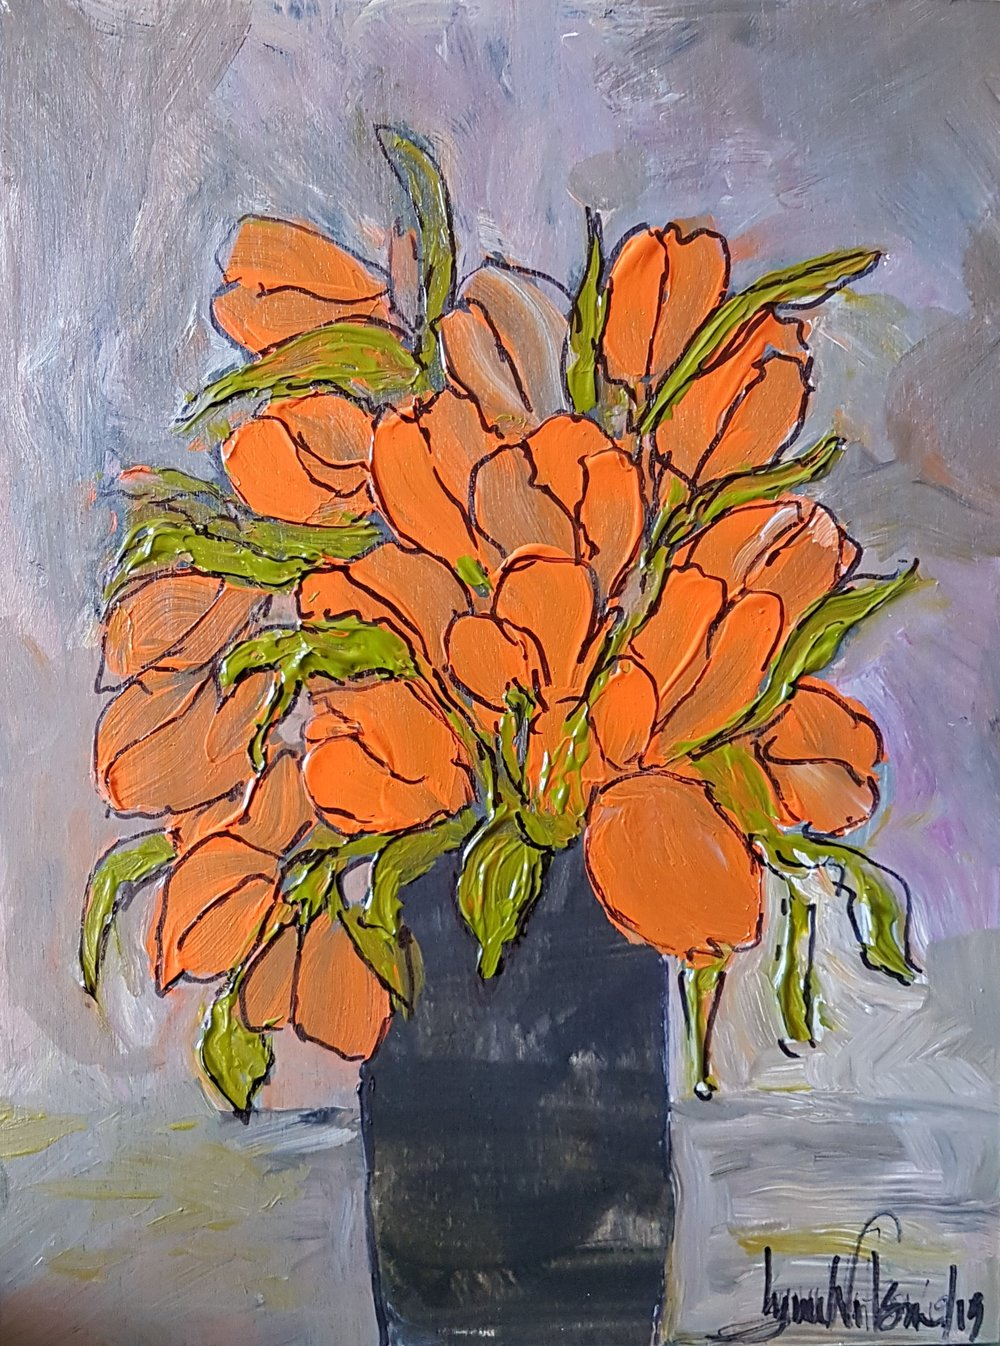 Flowers Series #16 Orange Tulips in Black narrow vase Wood Cradle Panel 9 x 12 March 2019 .jpg